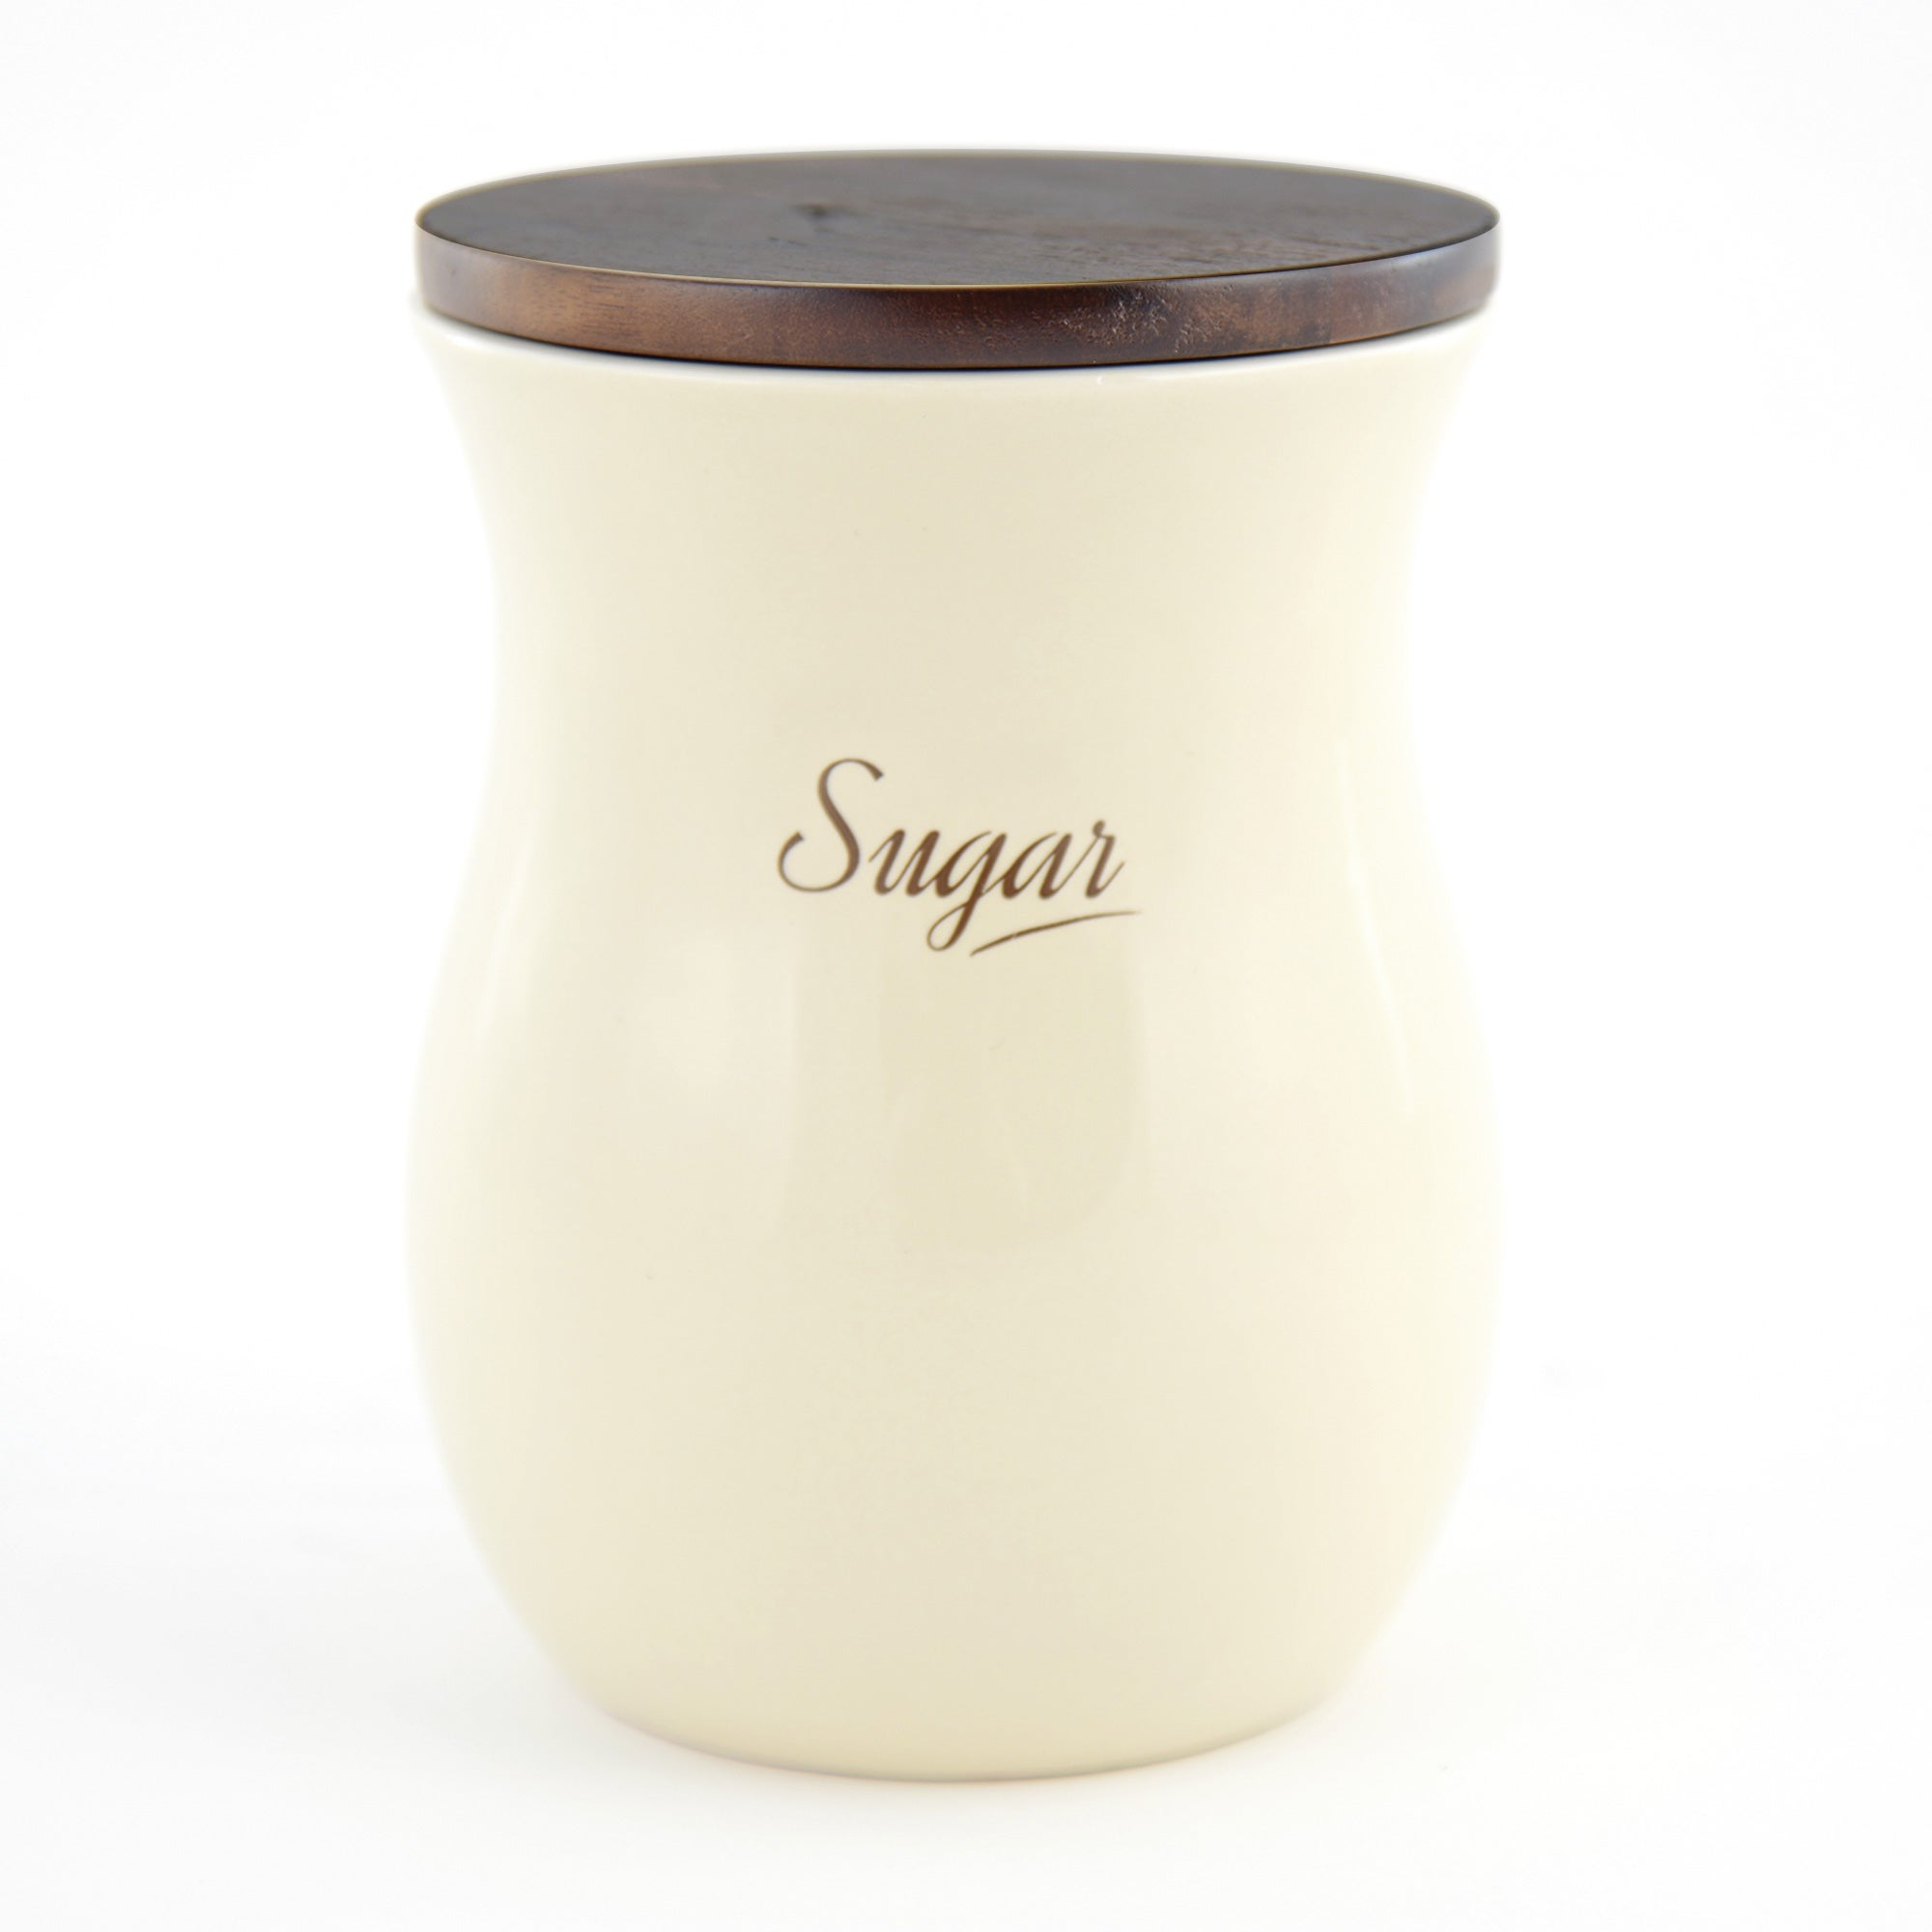 Hourglass Cream Sugar Canister